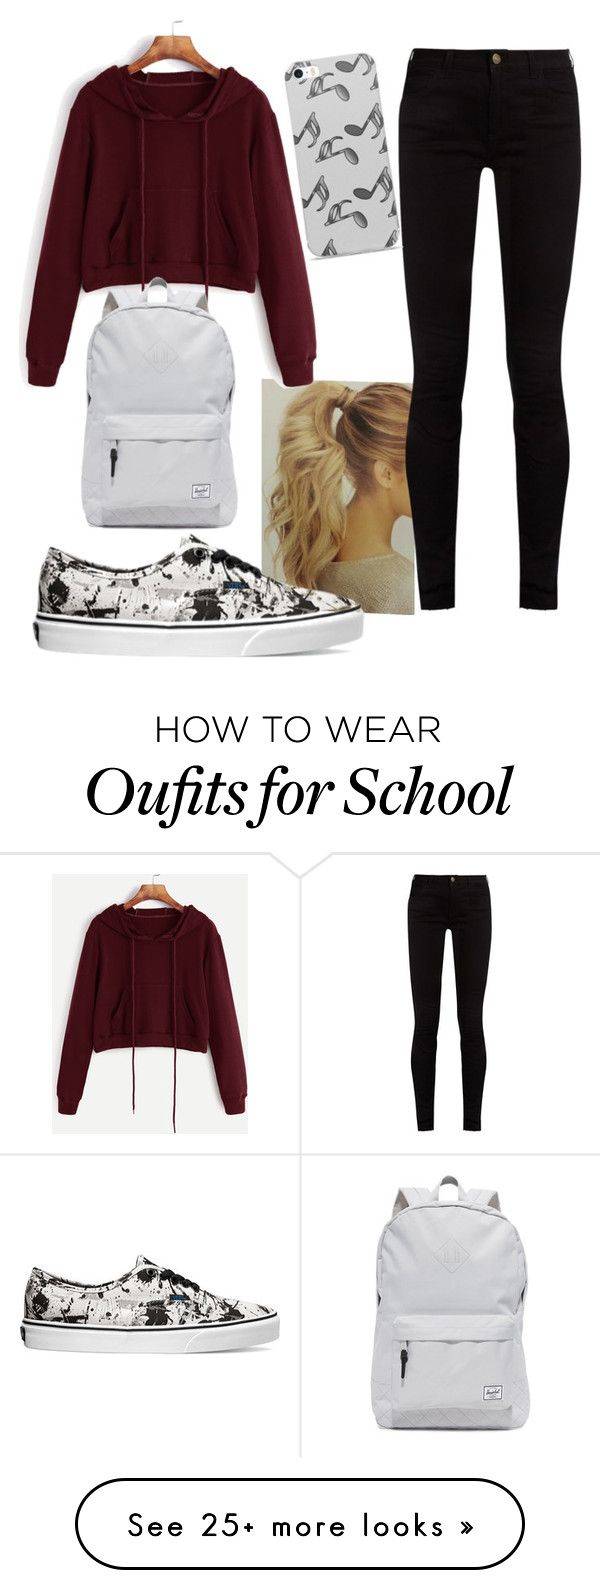 """""""School"""" by naomi-esperanza on Polyvore featuring Gucci, Vans, Herschel Supply Co. and Music Notes"""